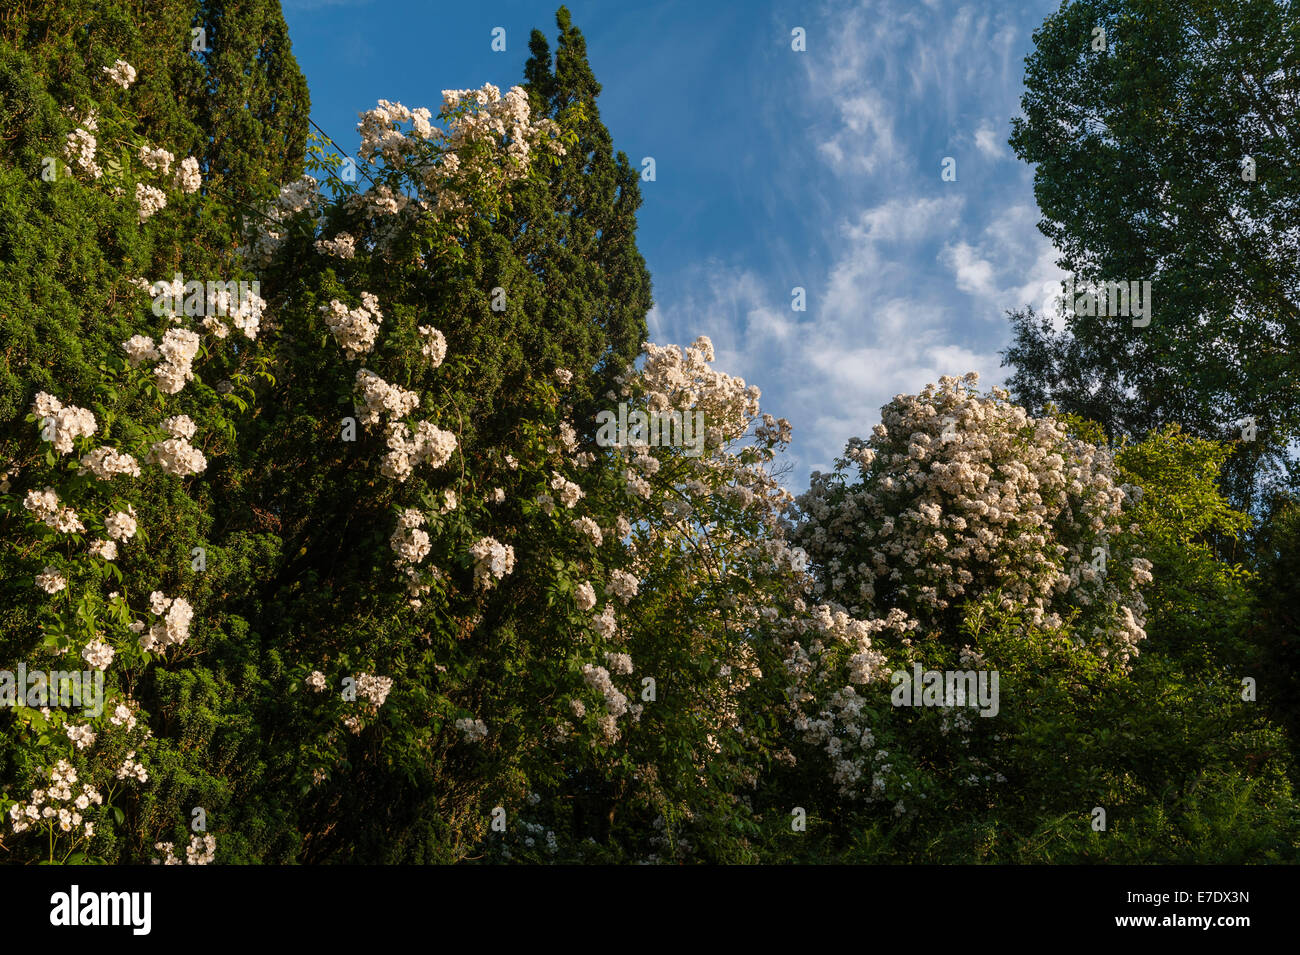 A vigorous white rambling rose (rosa 'Rambling Rector') scrambles over old trees in an English garden in - Stock Image